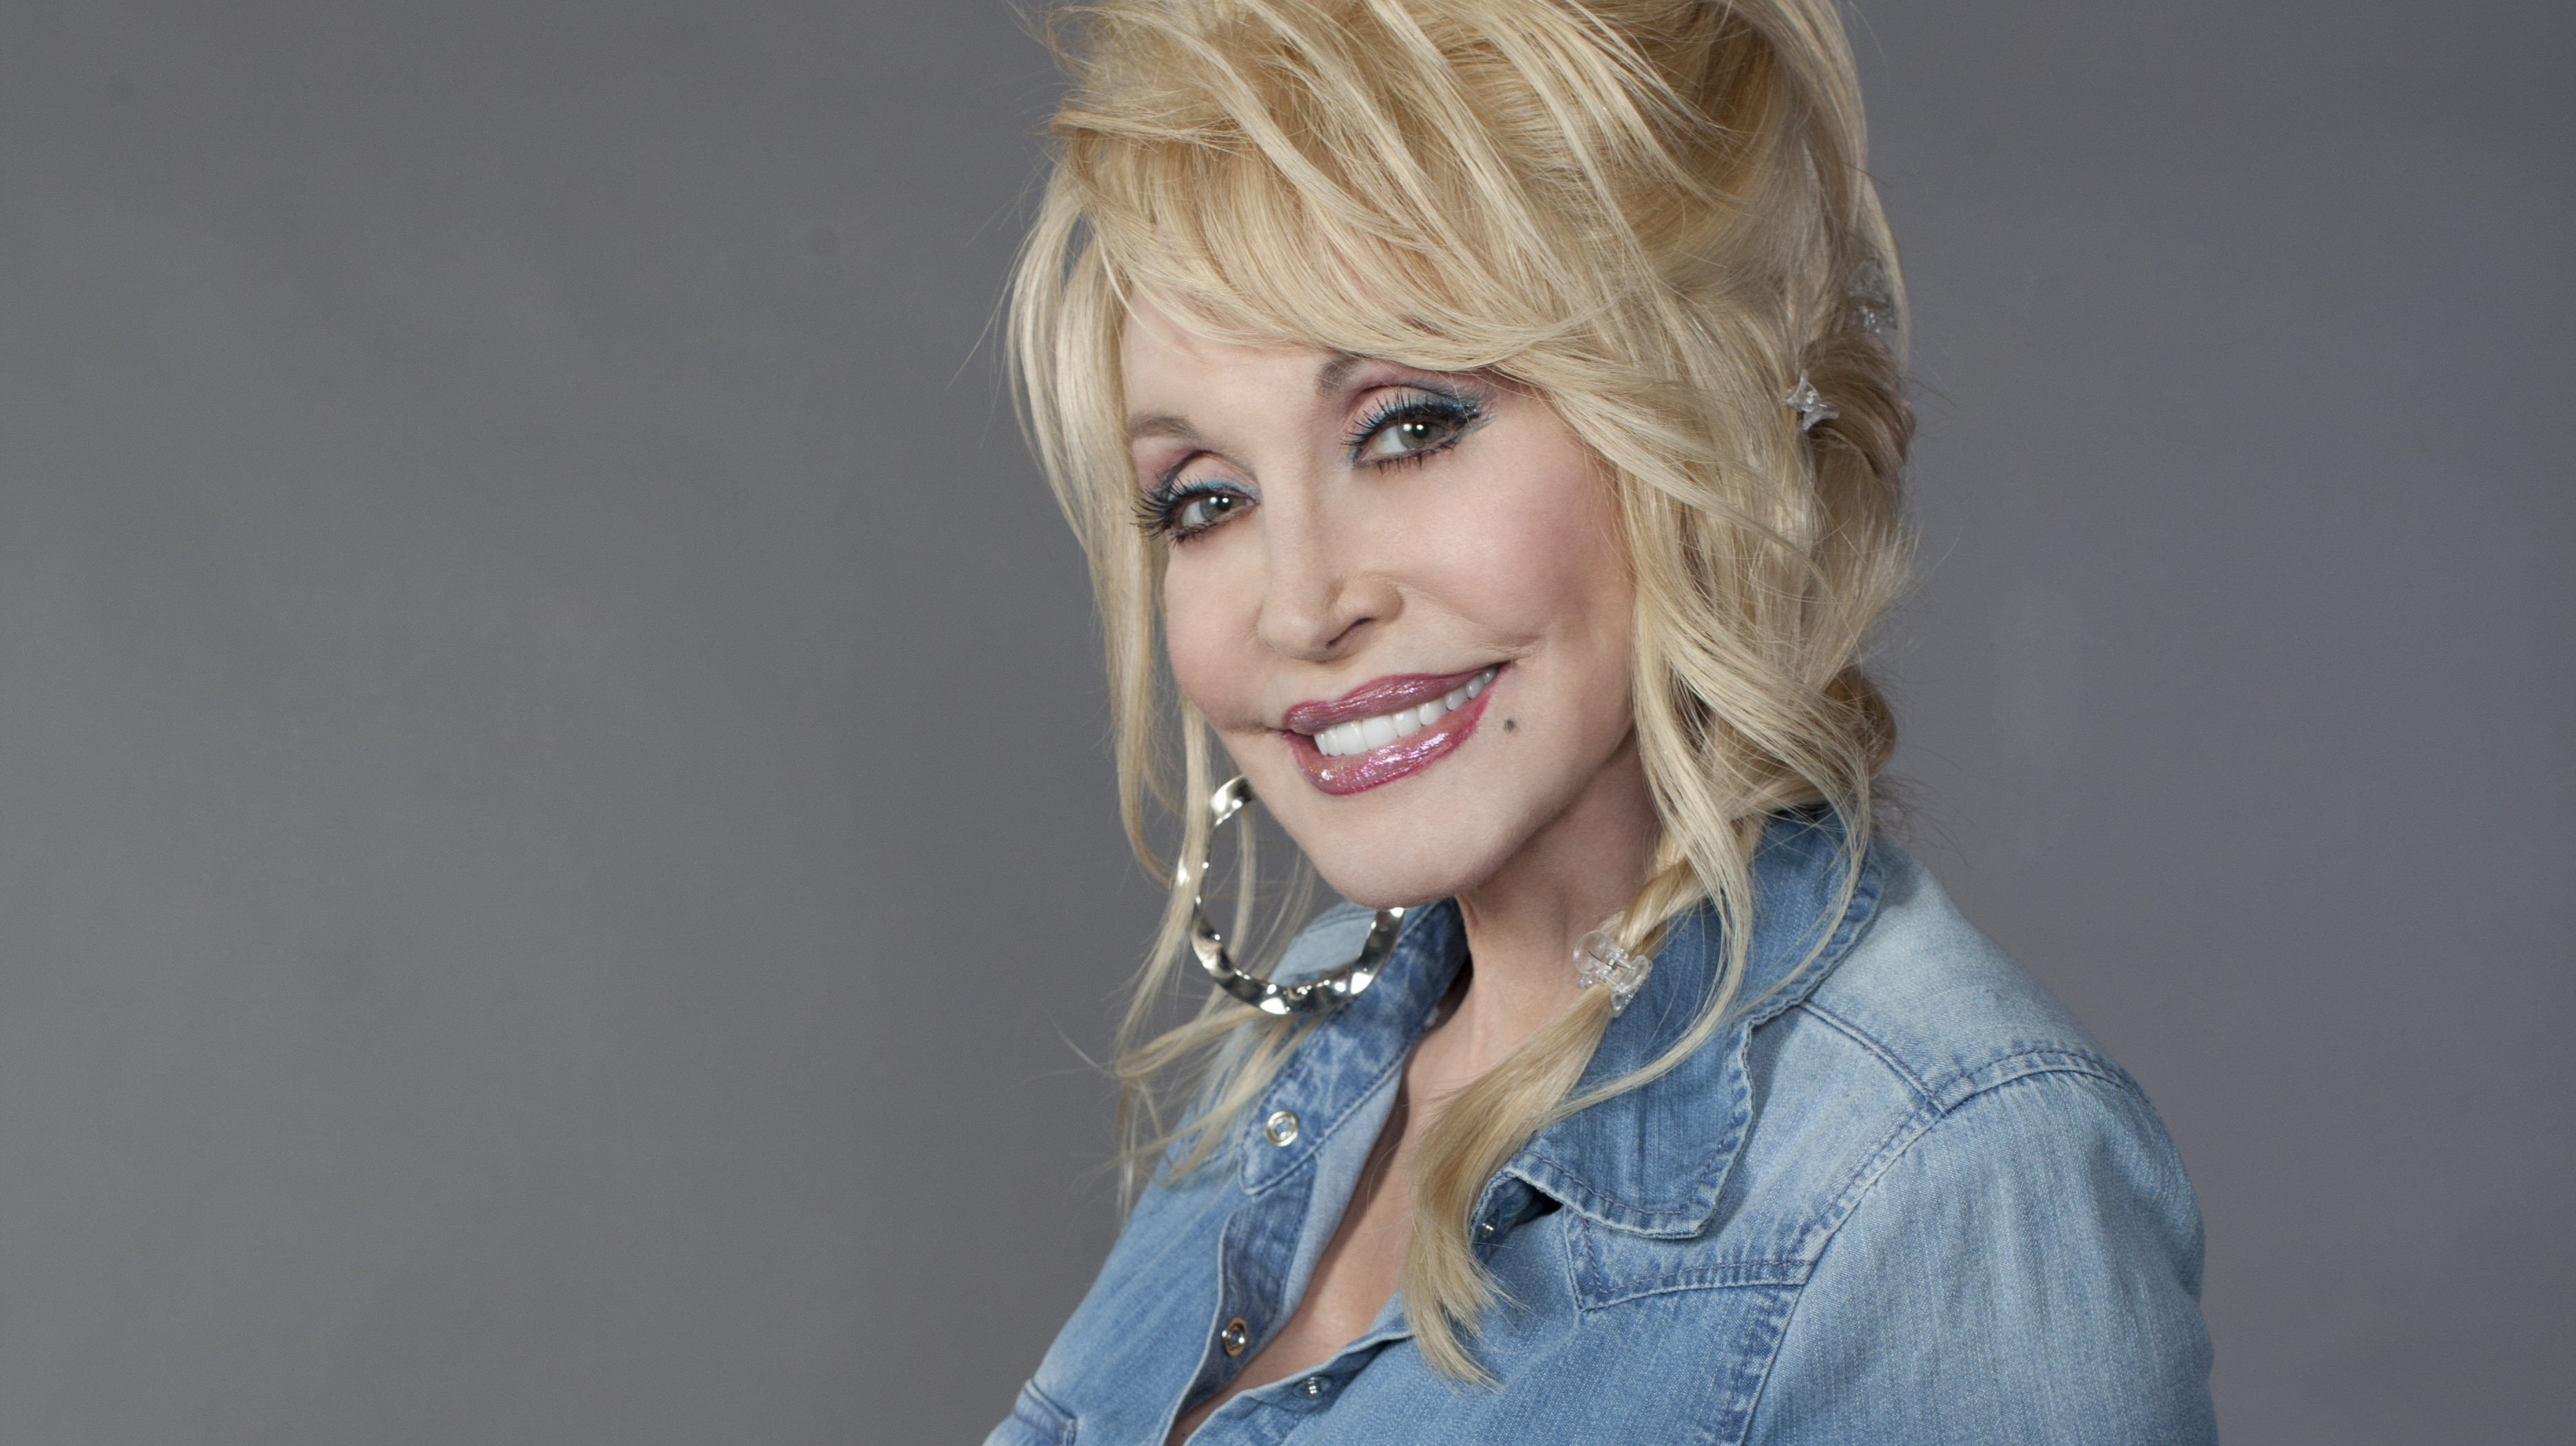 Dolly Parton Wallpapers And Backgrounds